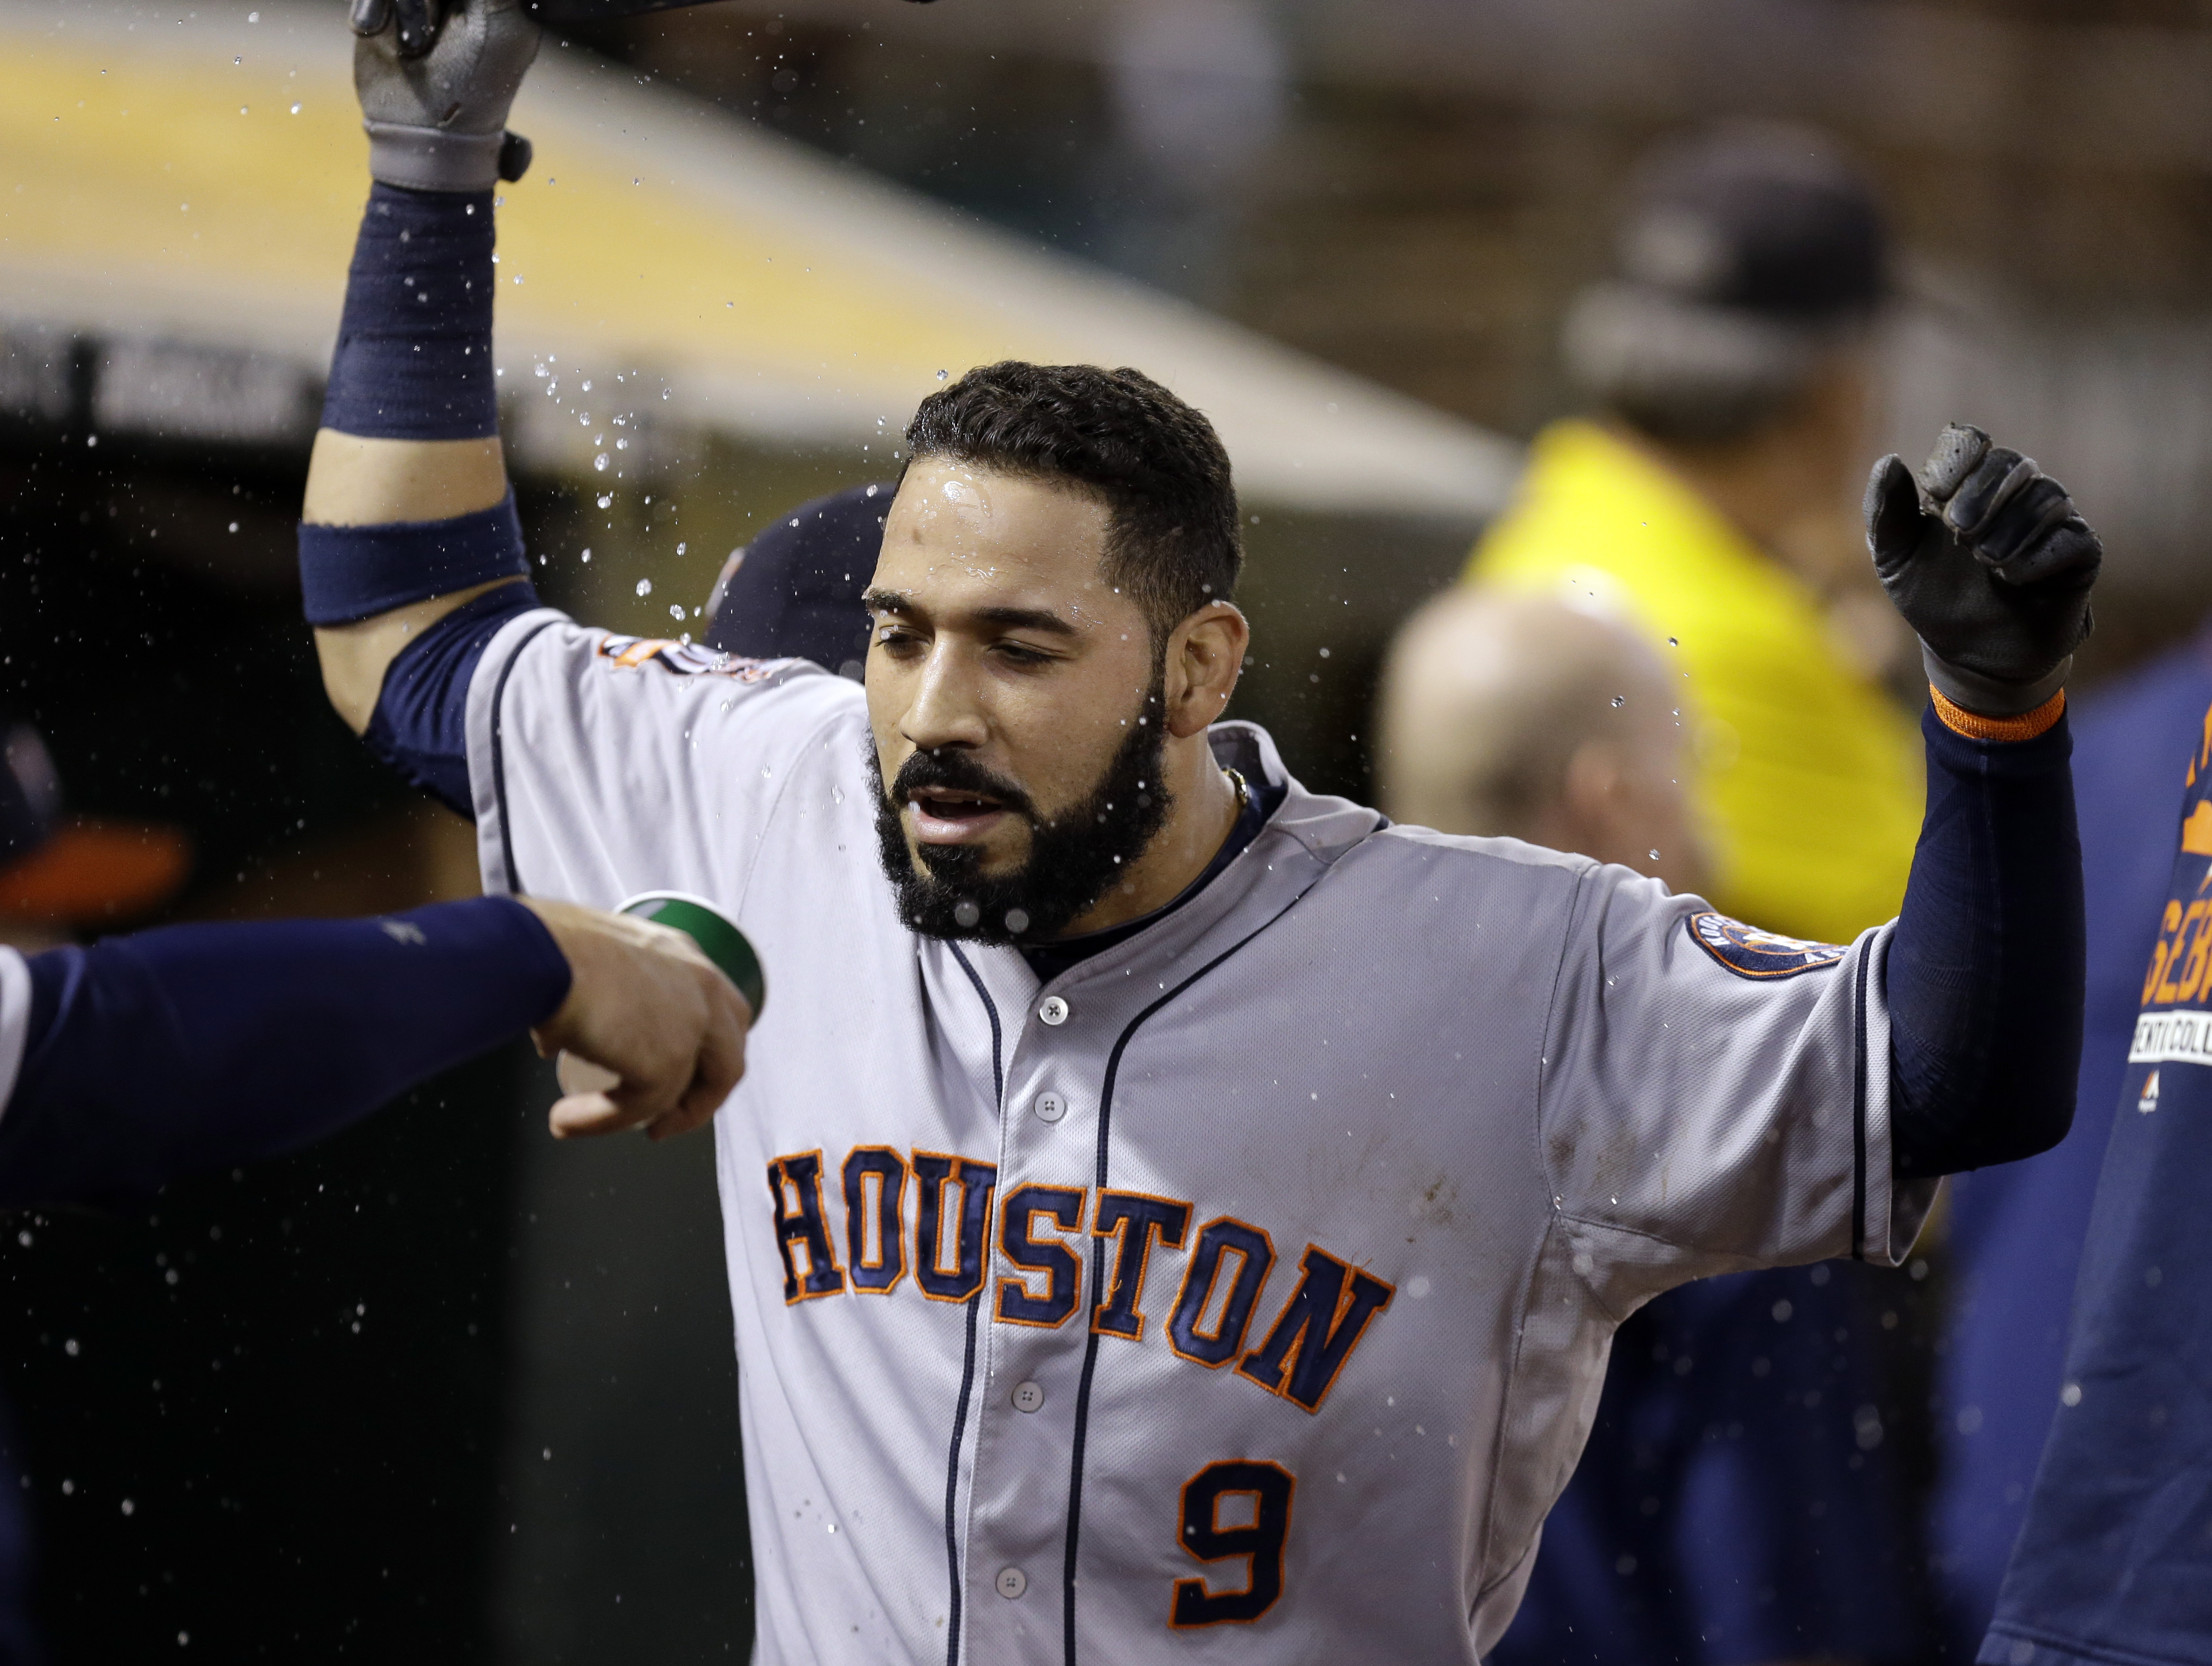 Houston Astros' Marwin Gonzalez (9) has water thrown in his face by a teammate after hitting a home run against the Oakland Athletics during the seventh inning of a baseball game Wednesday, Sept. 9, 2015, in Oakland, Calif. (AP Photo/Ben Margot)